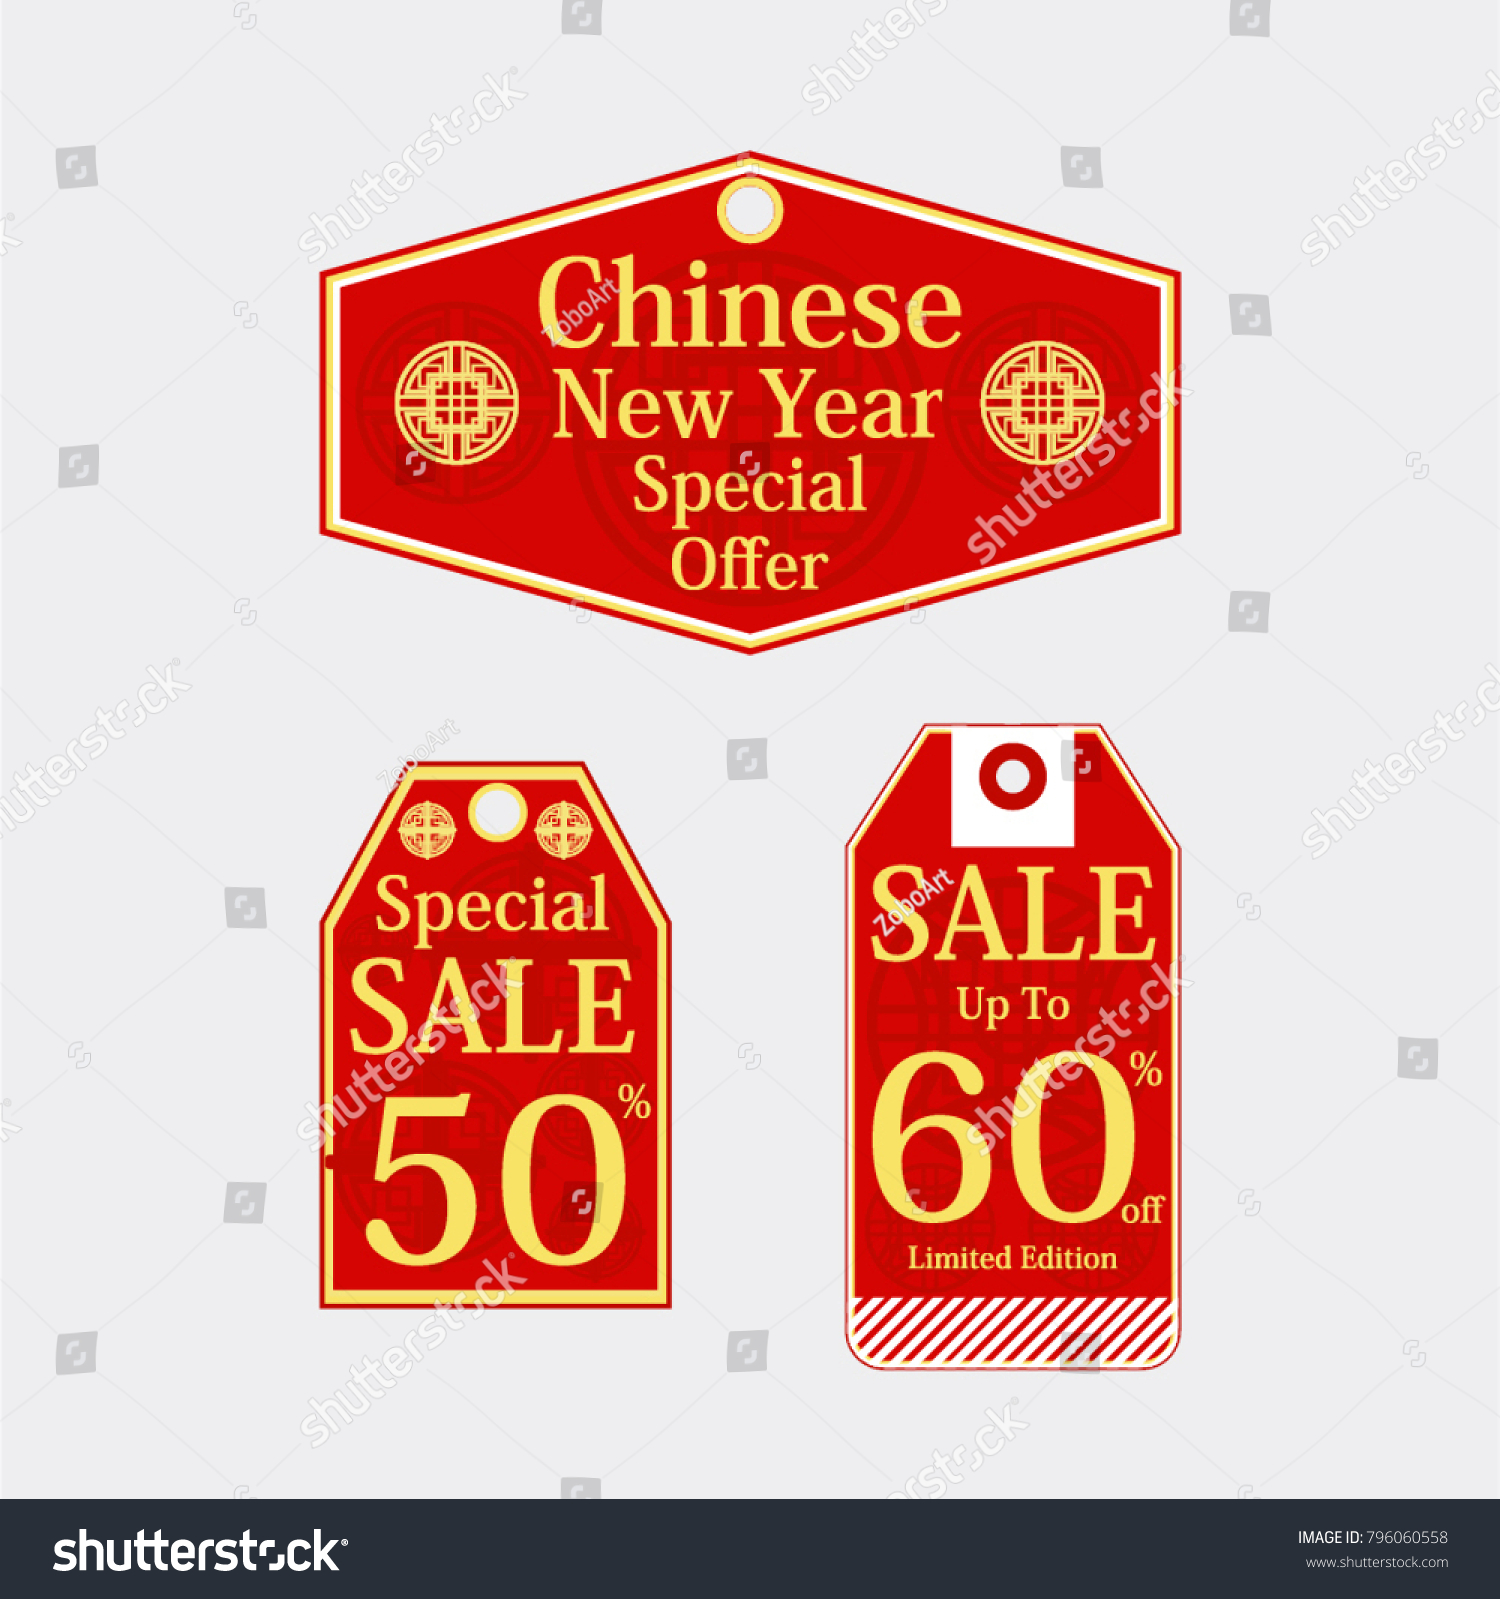 Chinese New Year Design Fortune Chinese Stock Vector 796060558